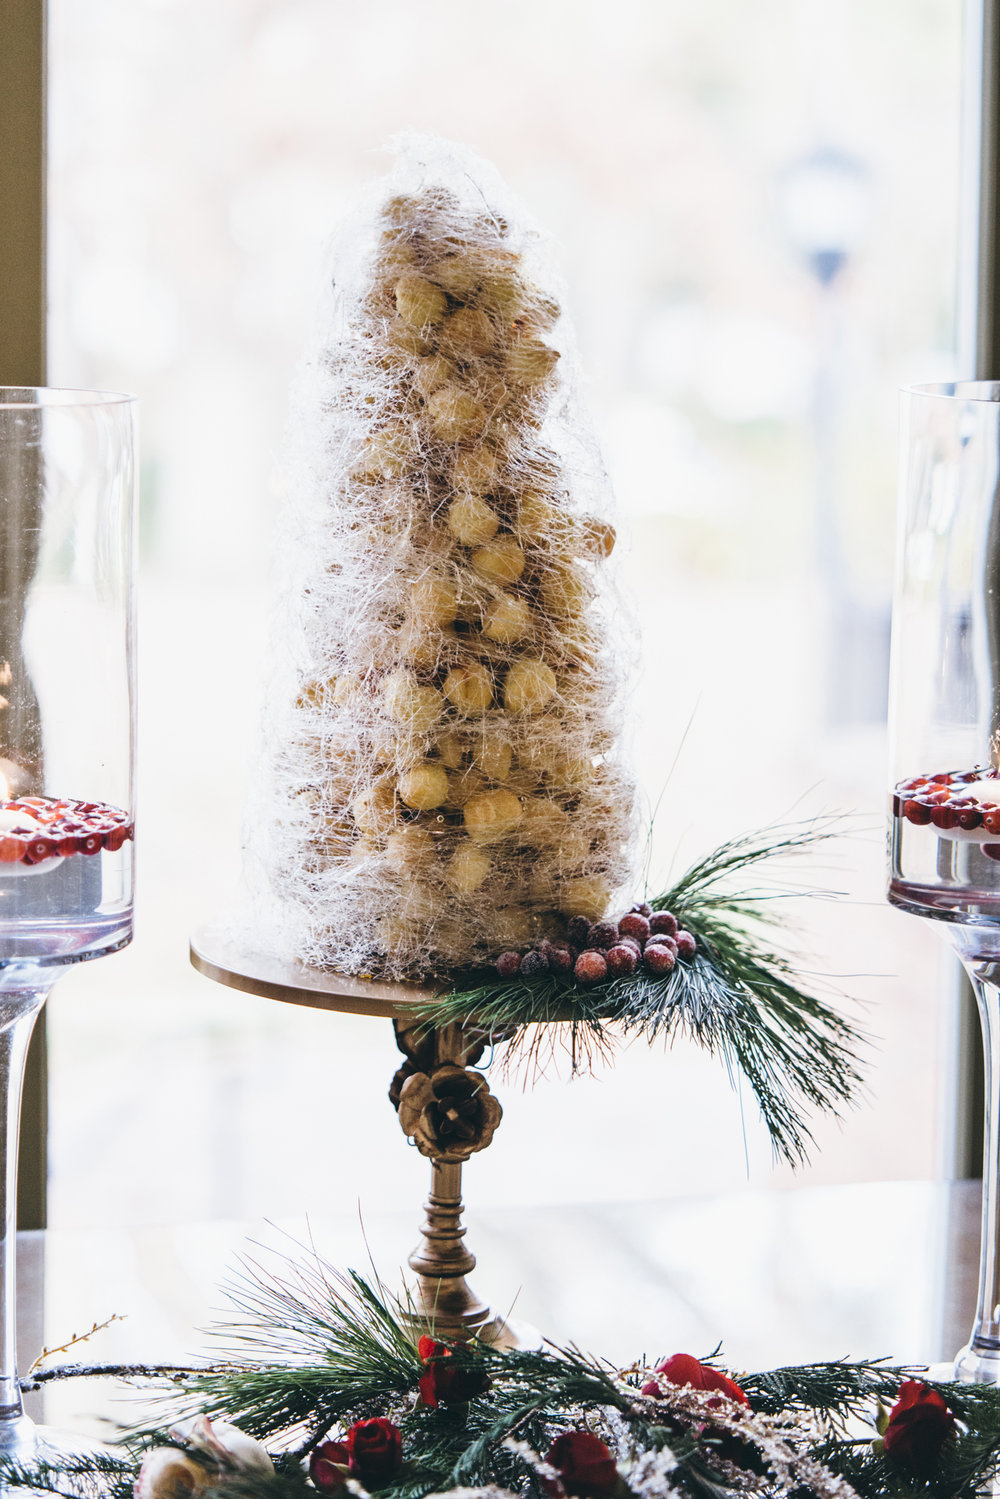 Croquembouche - – cream puffs, finely spun sugar